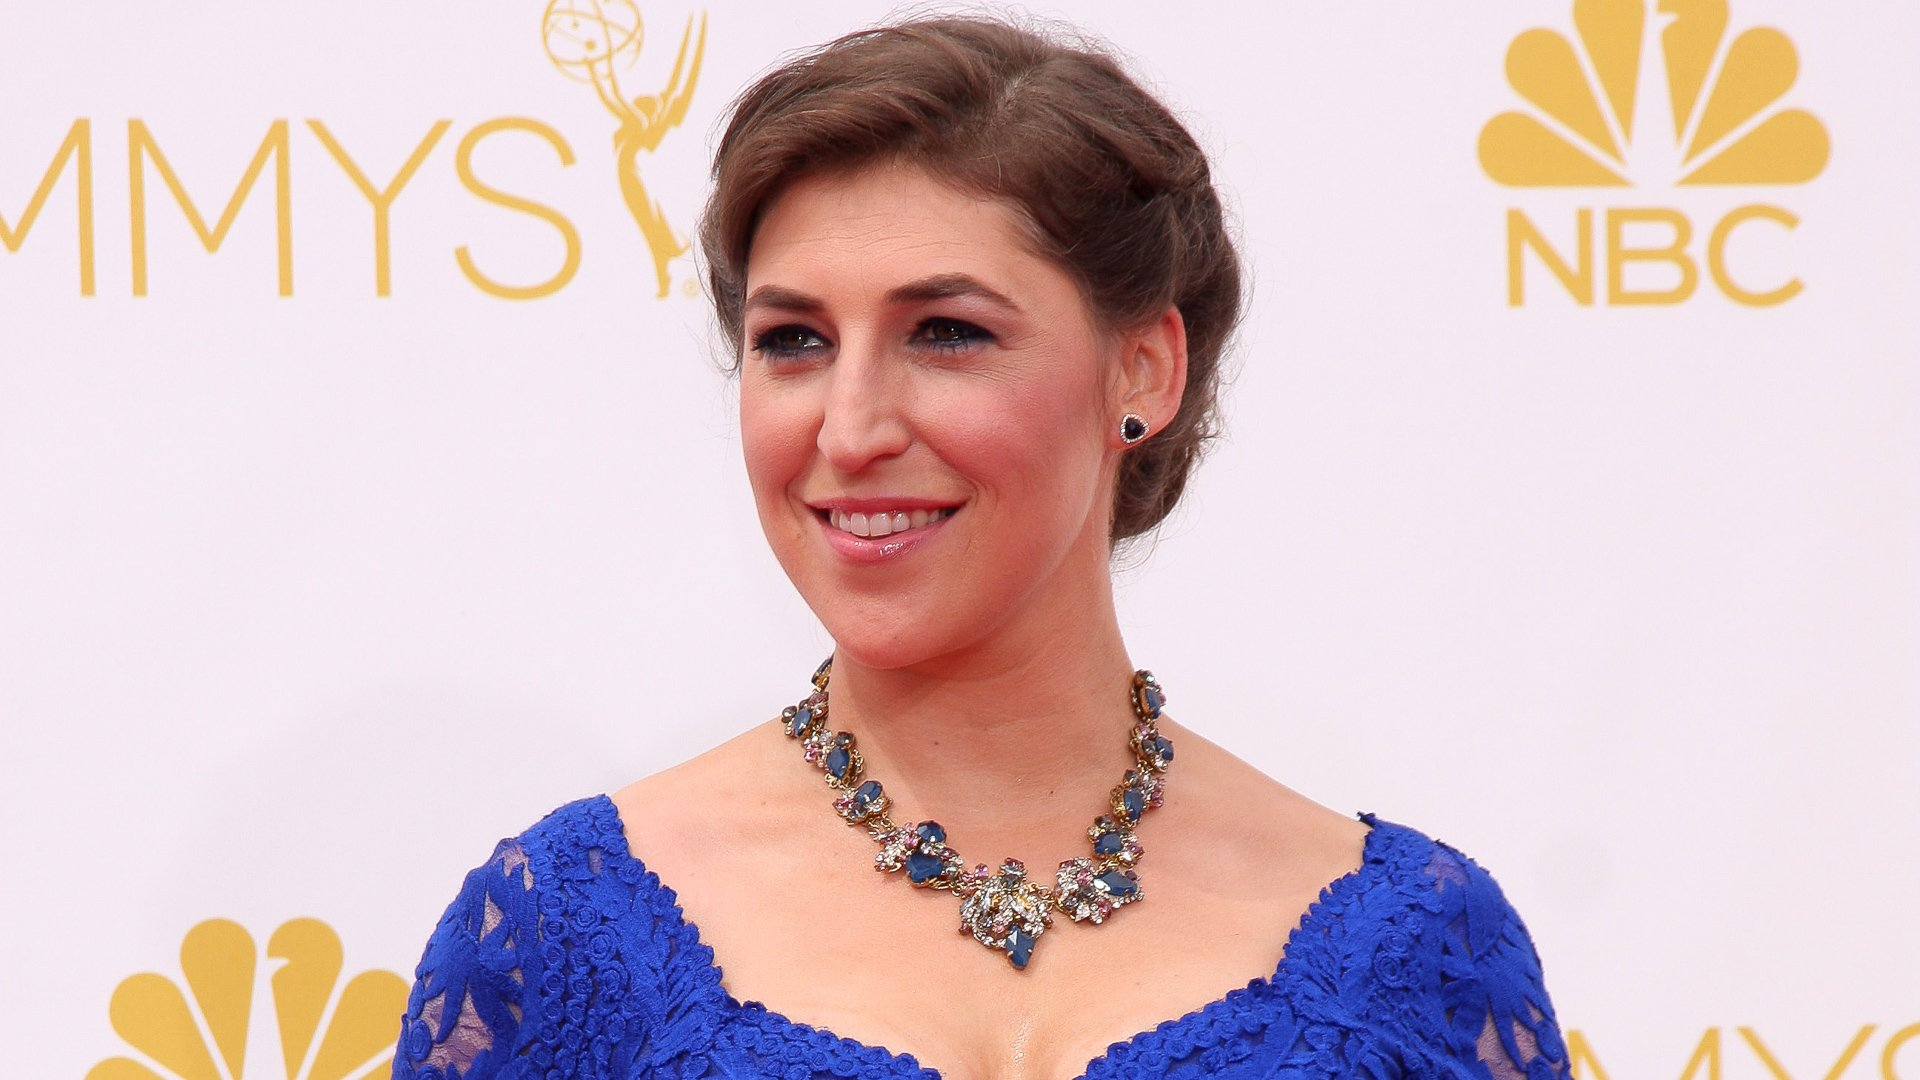 How Rich Is Mayim Bialik?